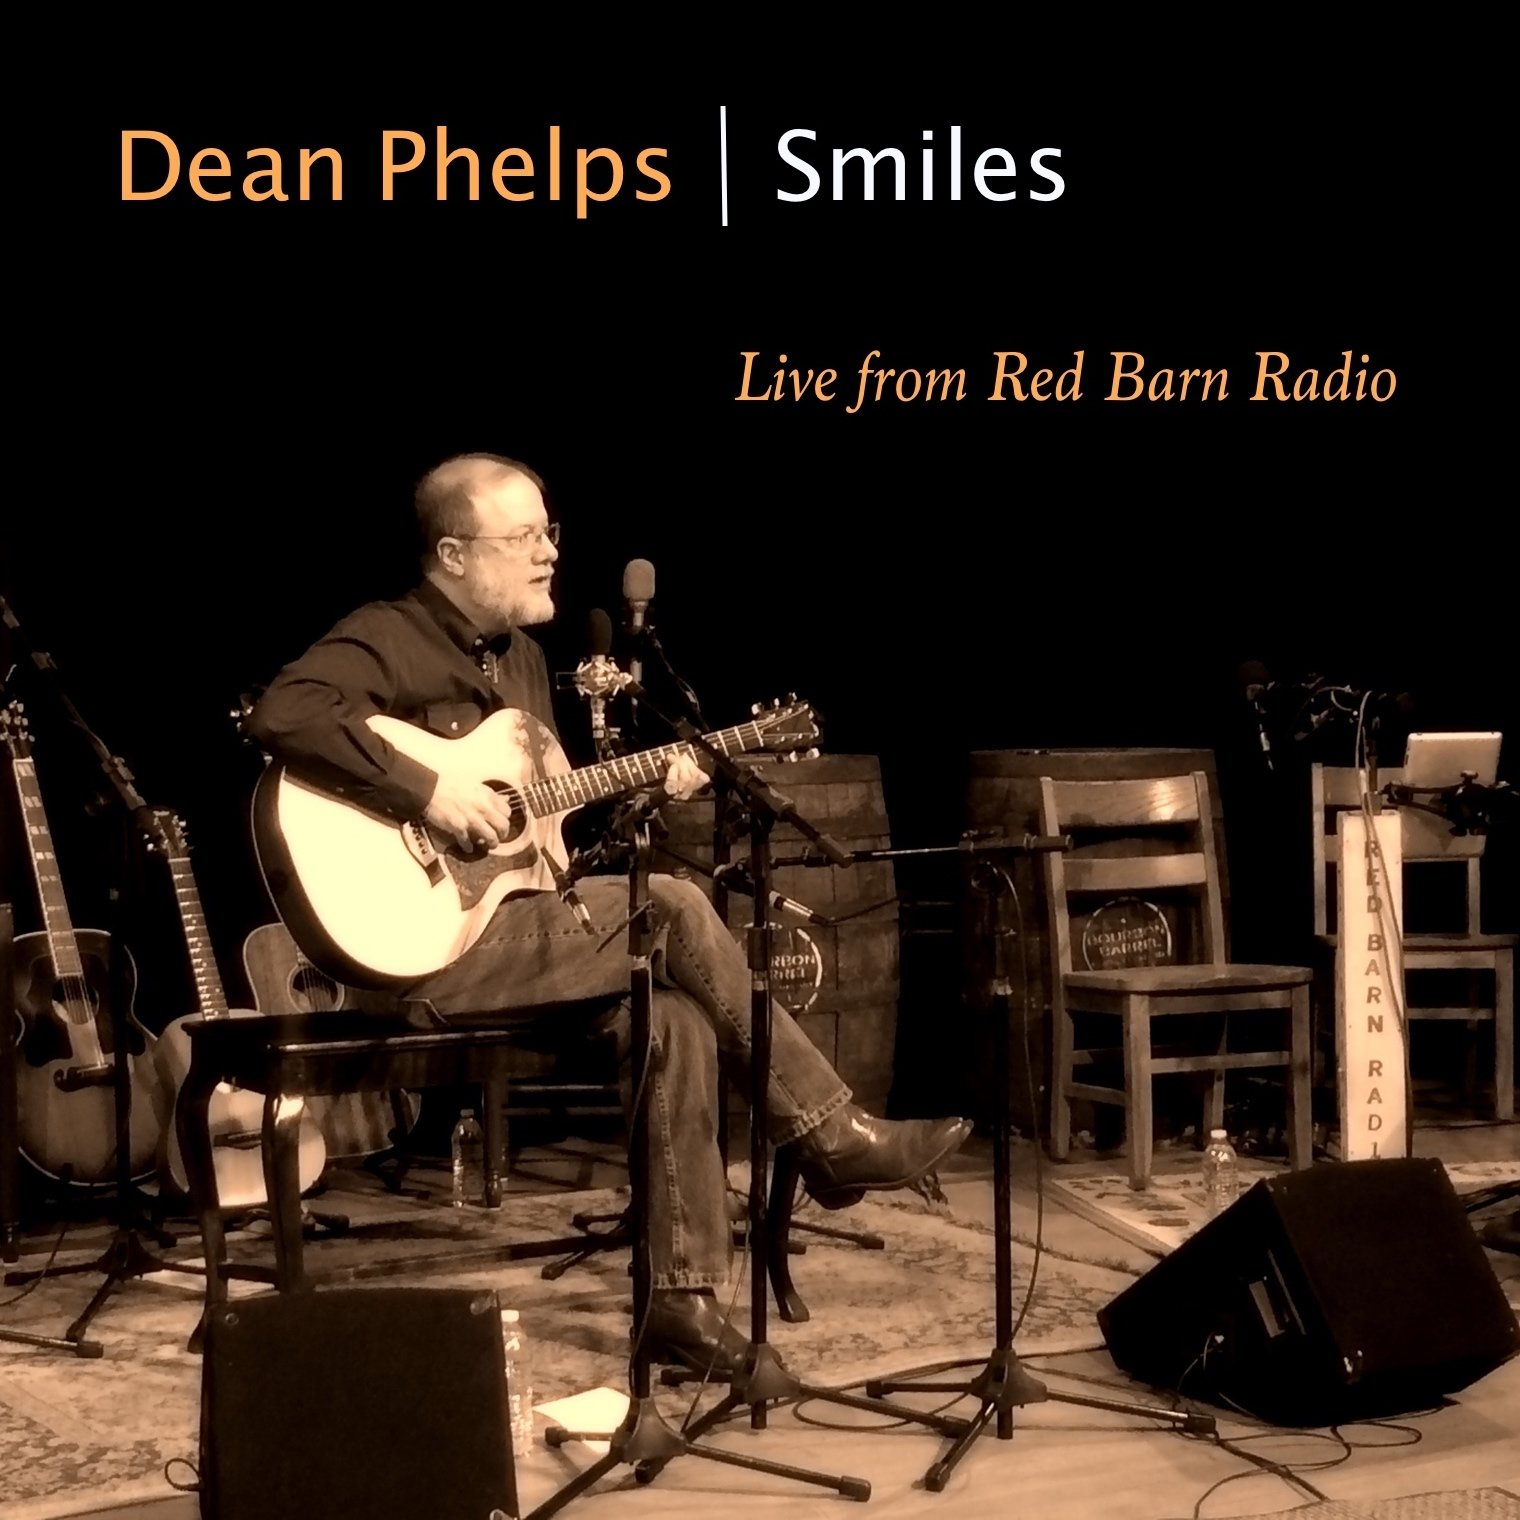 Smiles (Live from Red Barn Radio) 52017